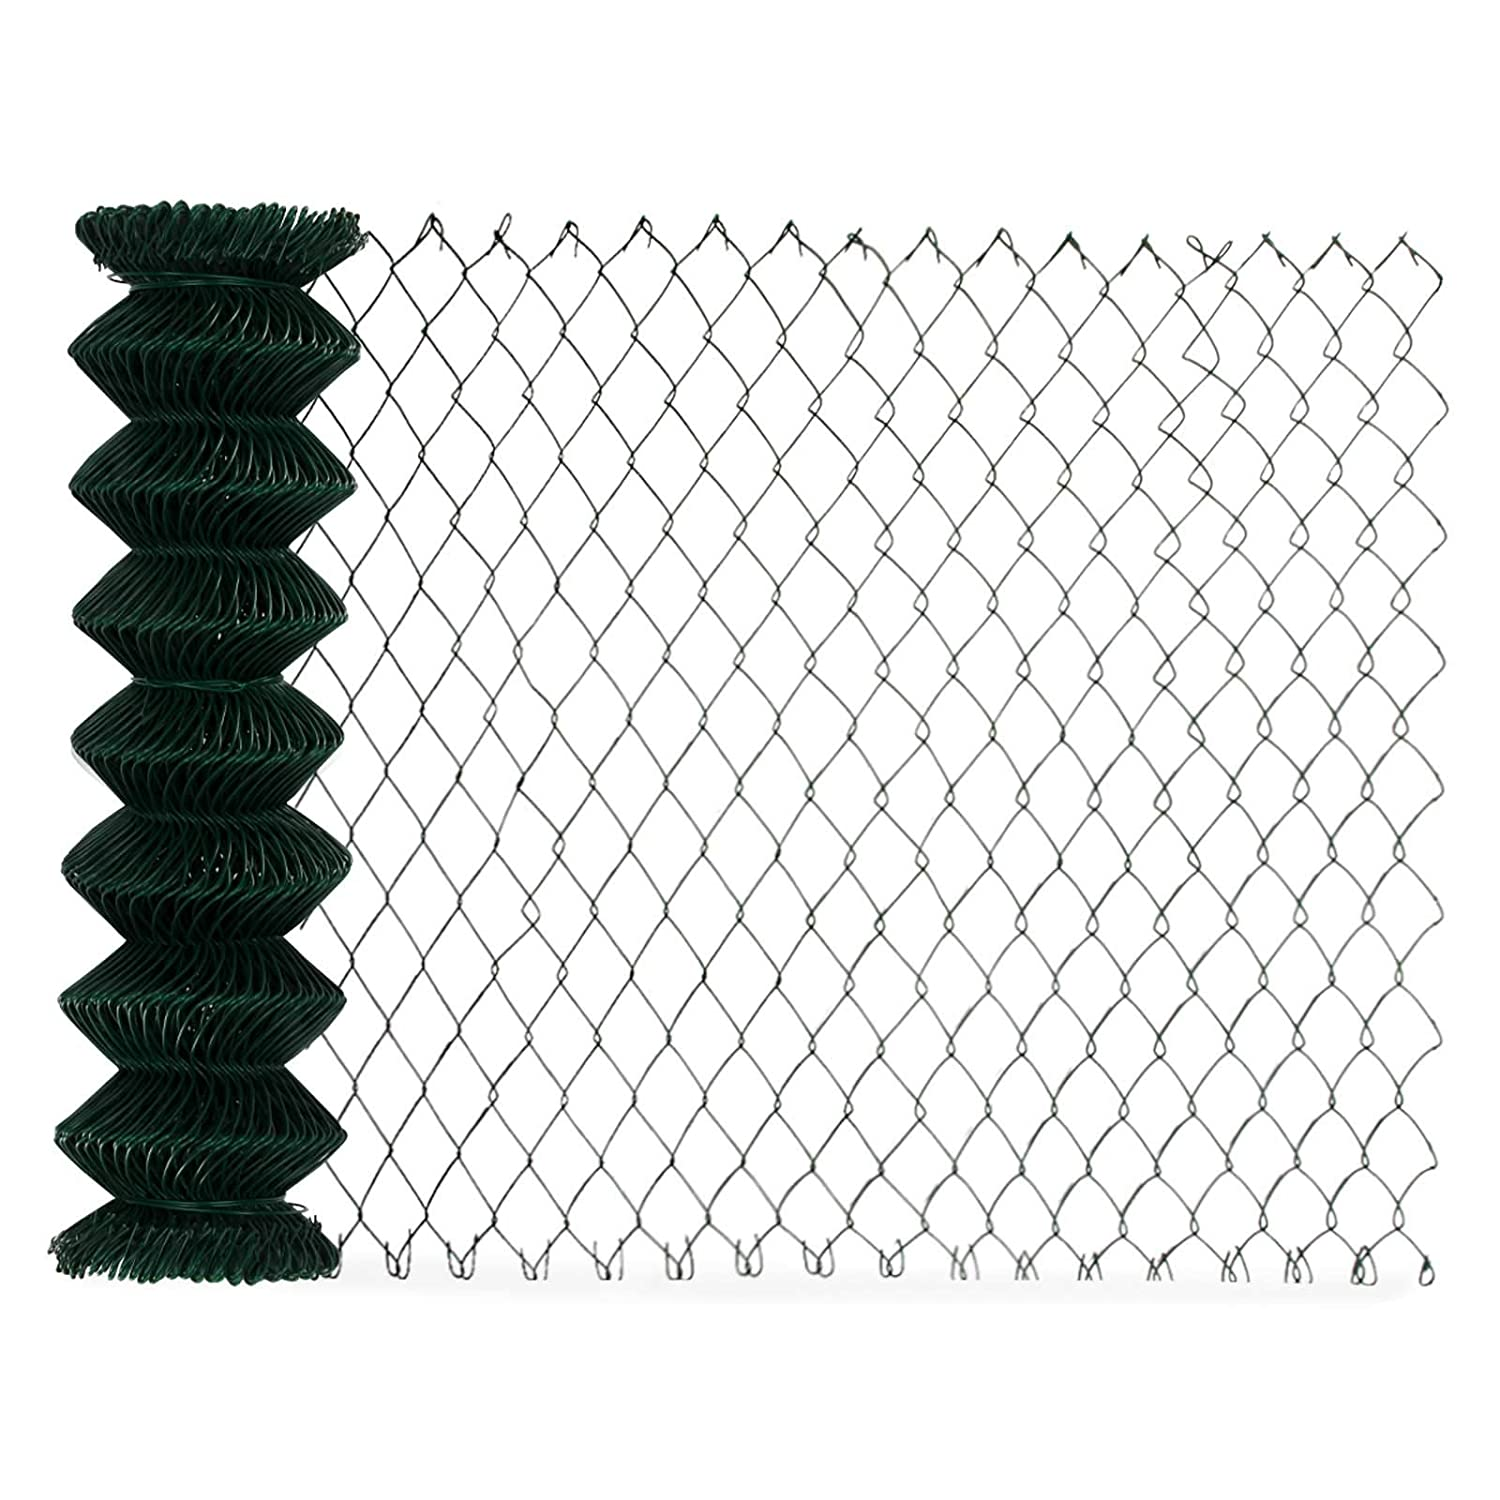 1.25 m (H) x 25 m (L) casa pura Heavy-Duty Mesh Fencing, PVC Coated, Green 1.25m x 25m   Commercial Grade   Multiple Sizes